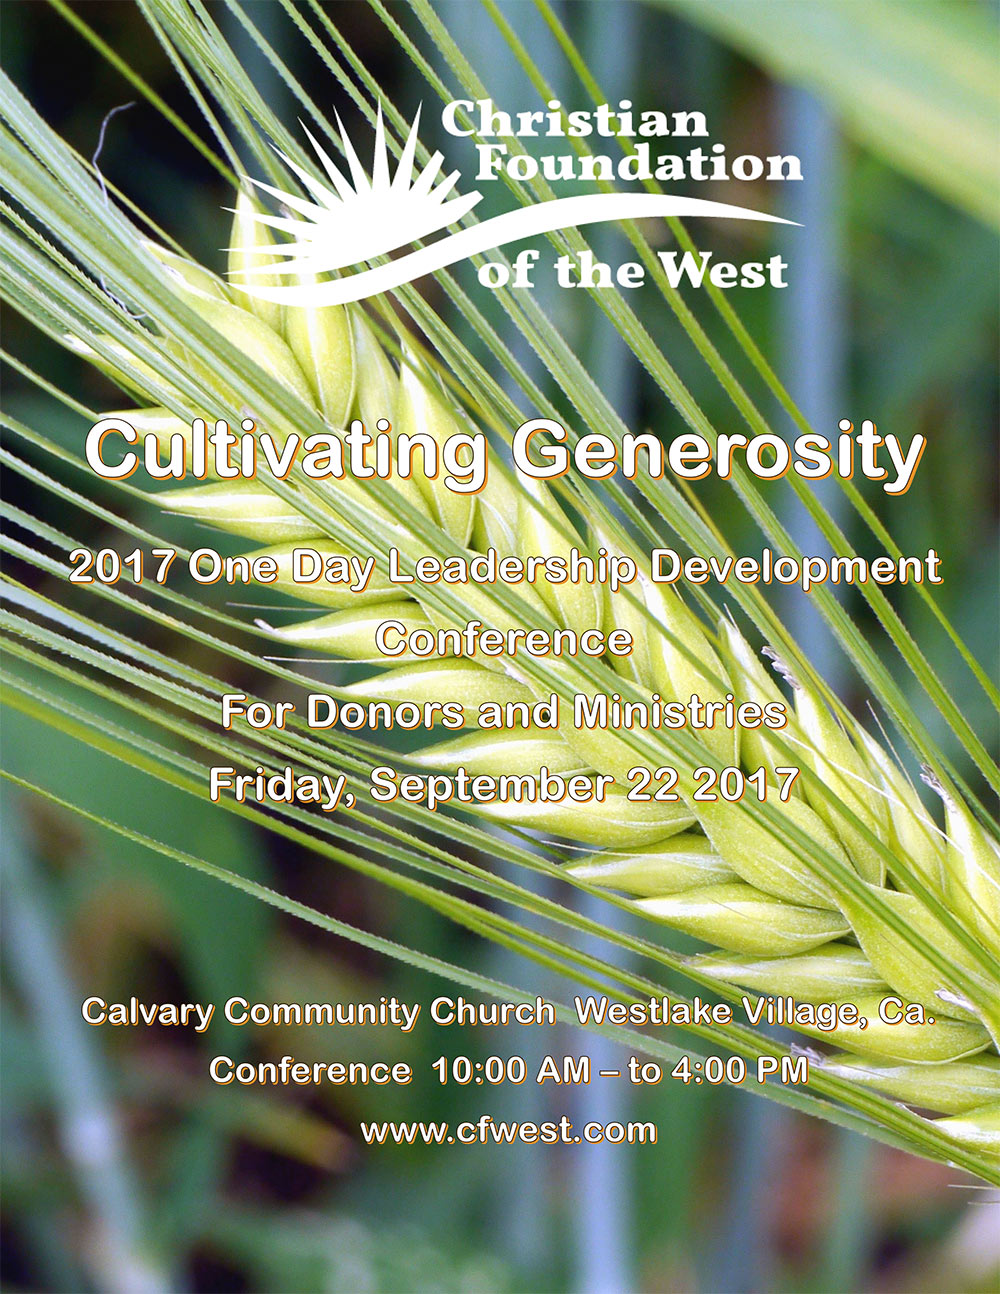 Click photo for PDF of Conference Program